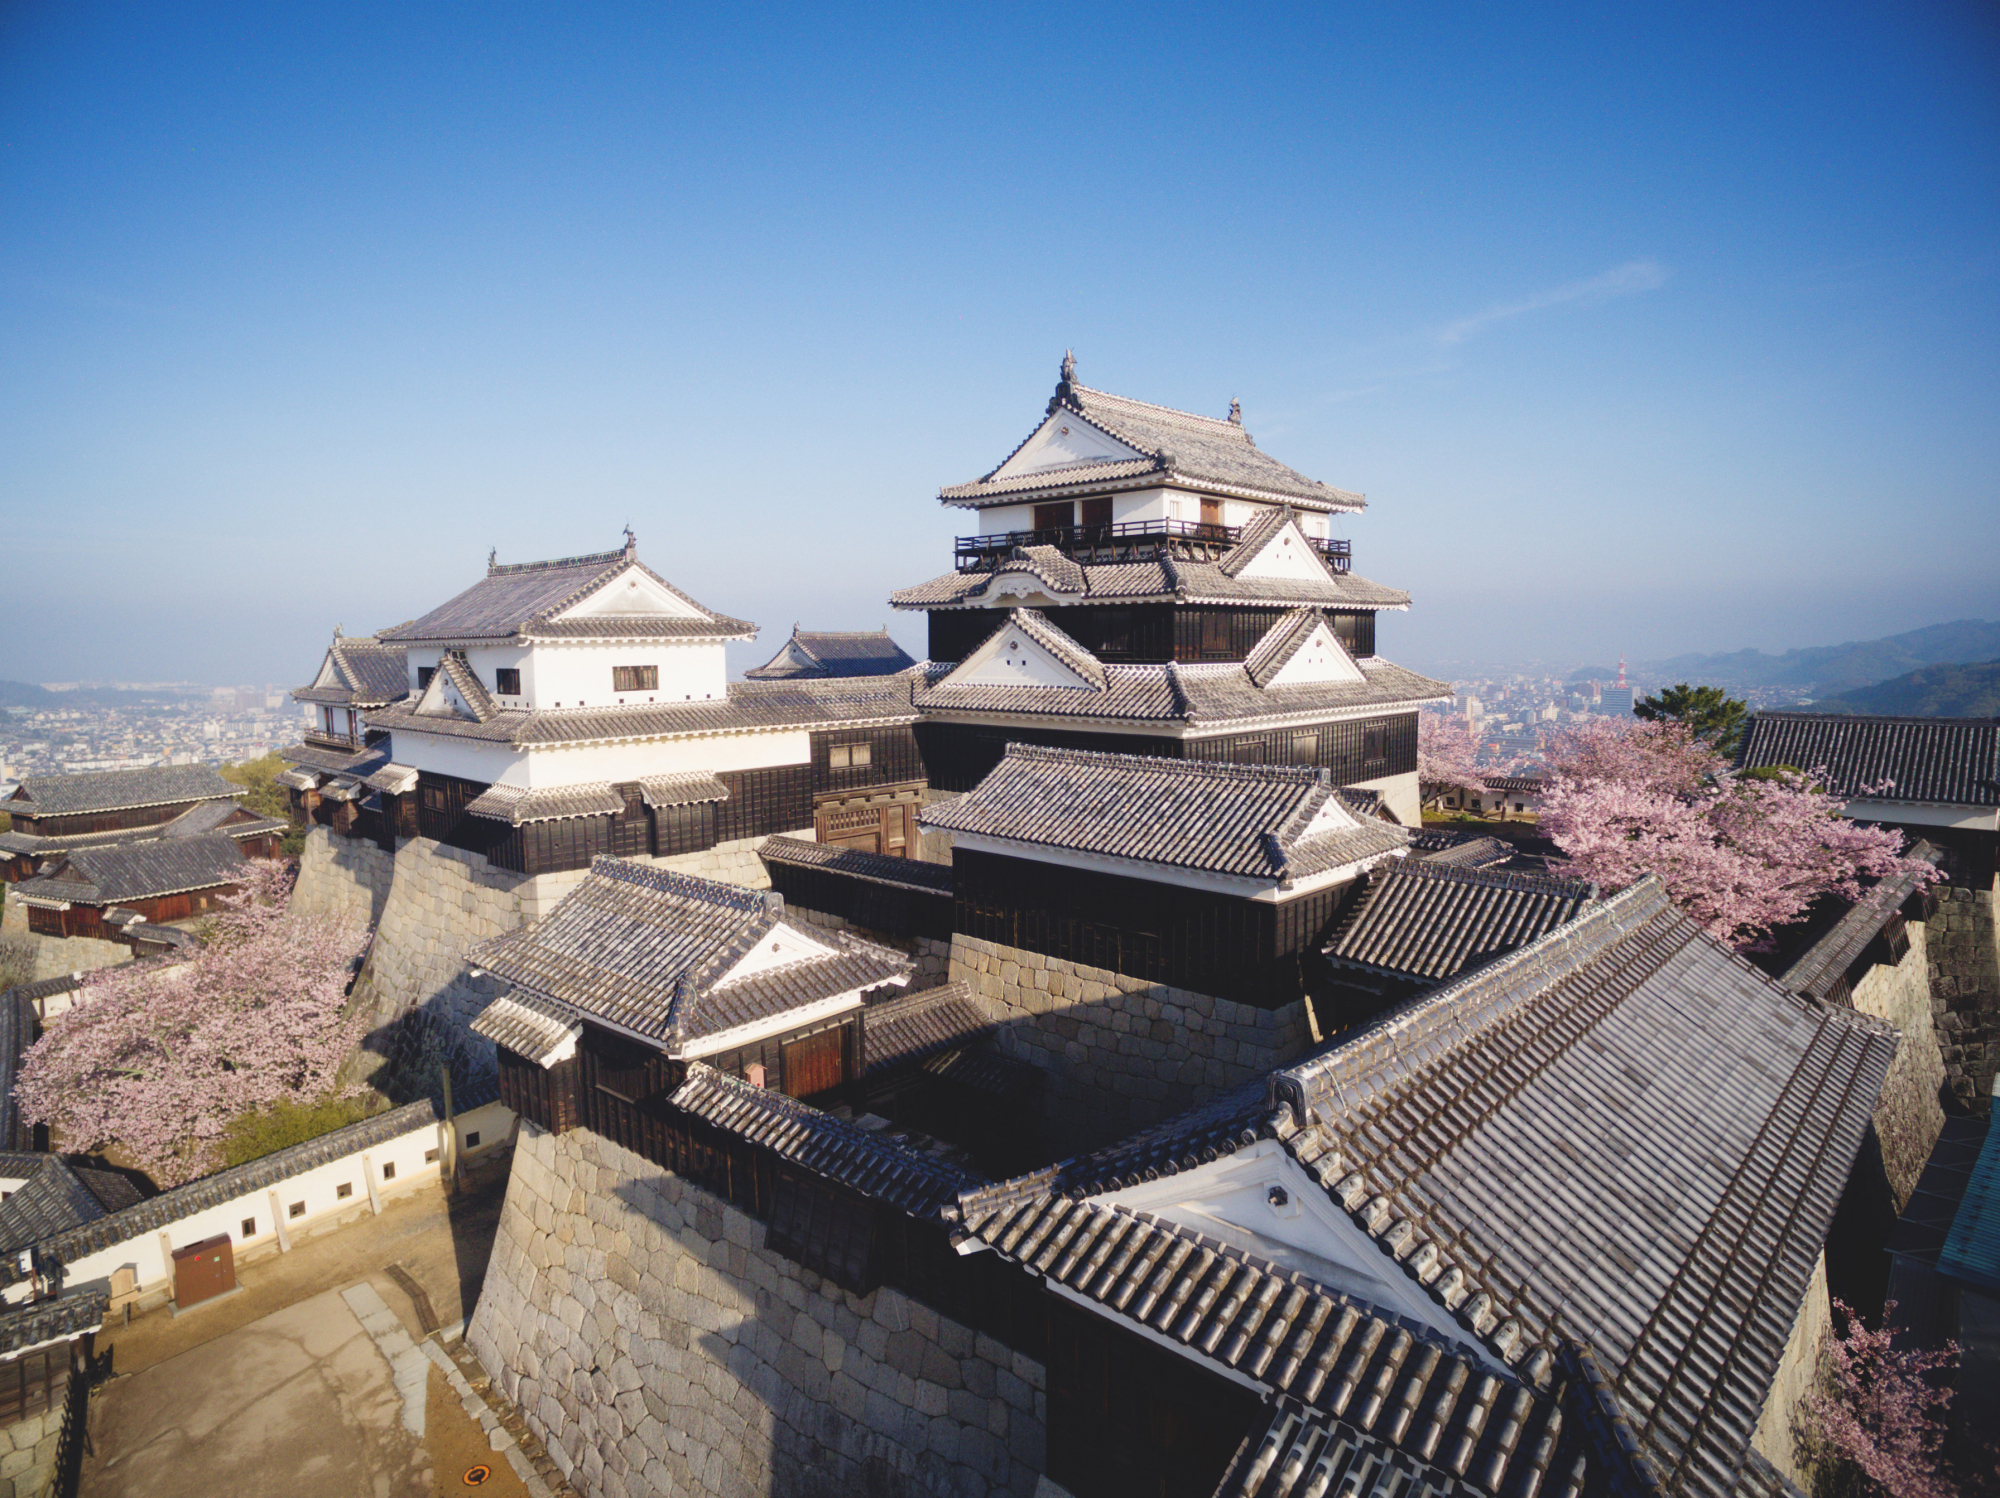 Matsuyama Castle is located in the heart of the city on top of Mount Katsuyama. | CITY OF MATSUYAMA